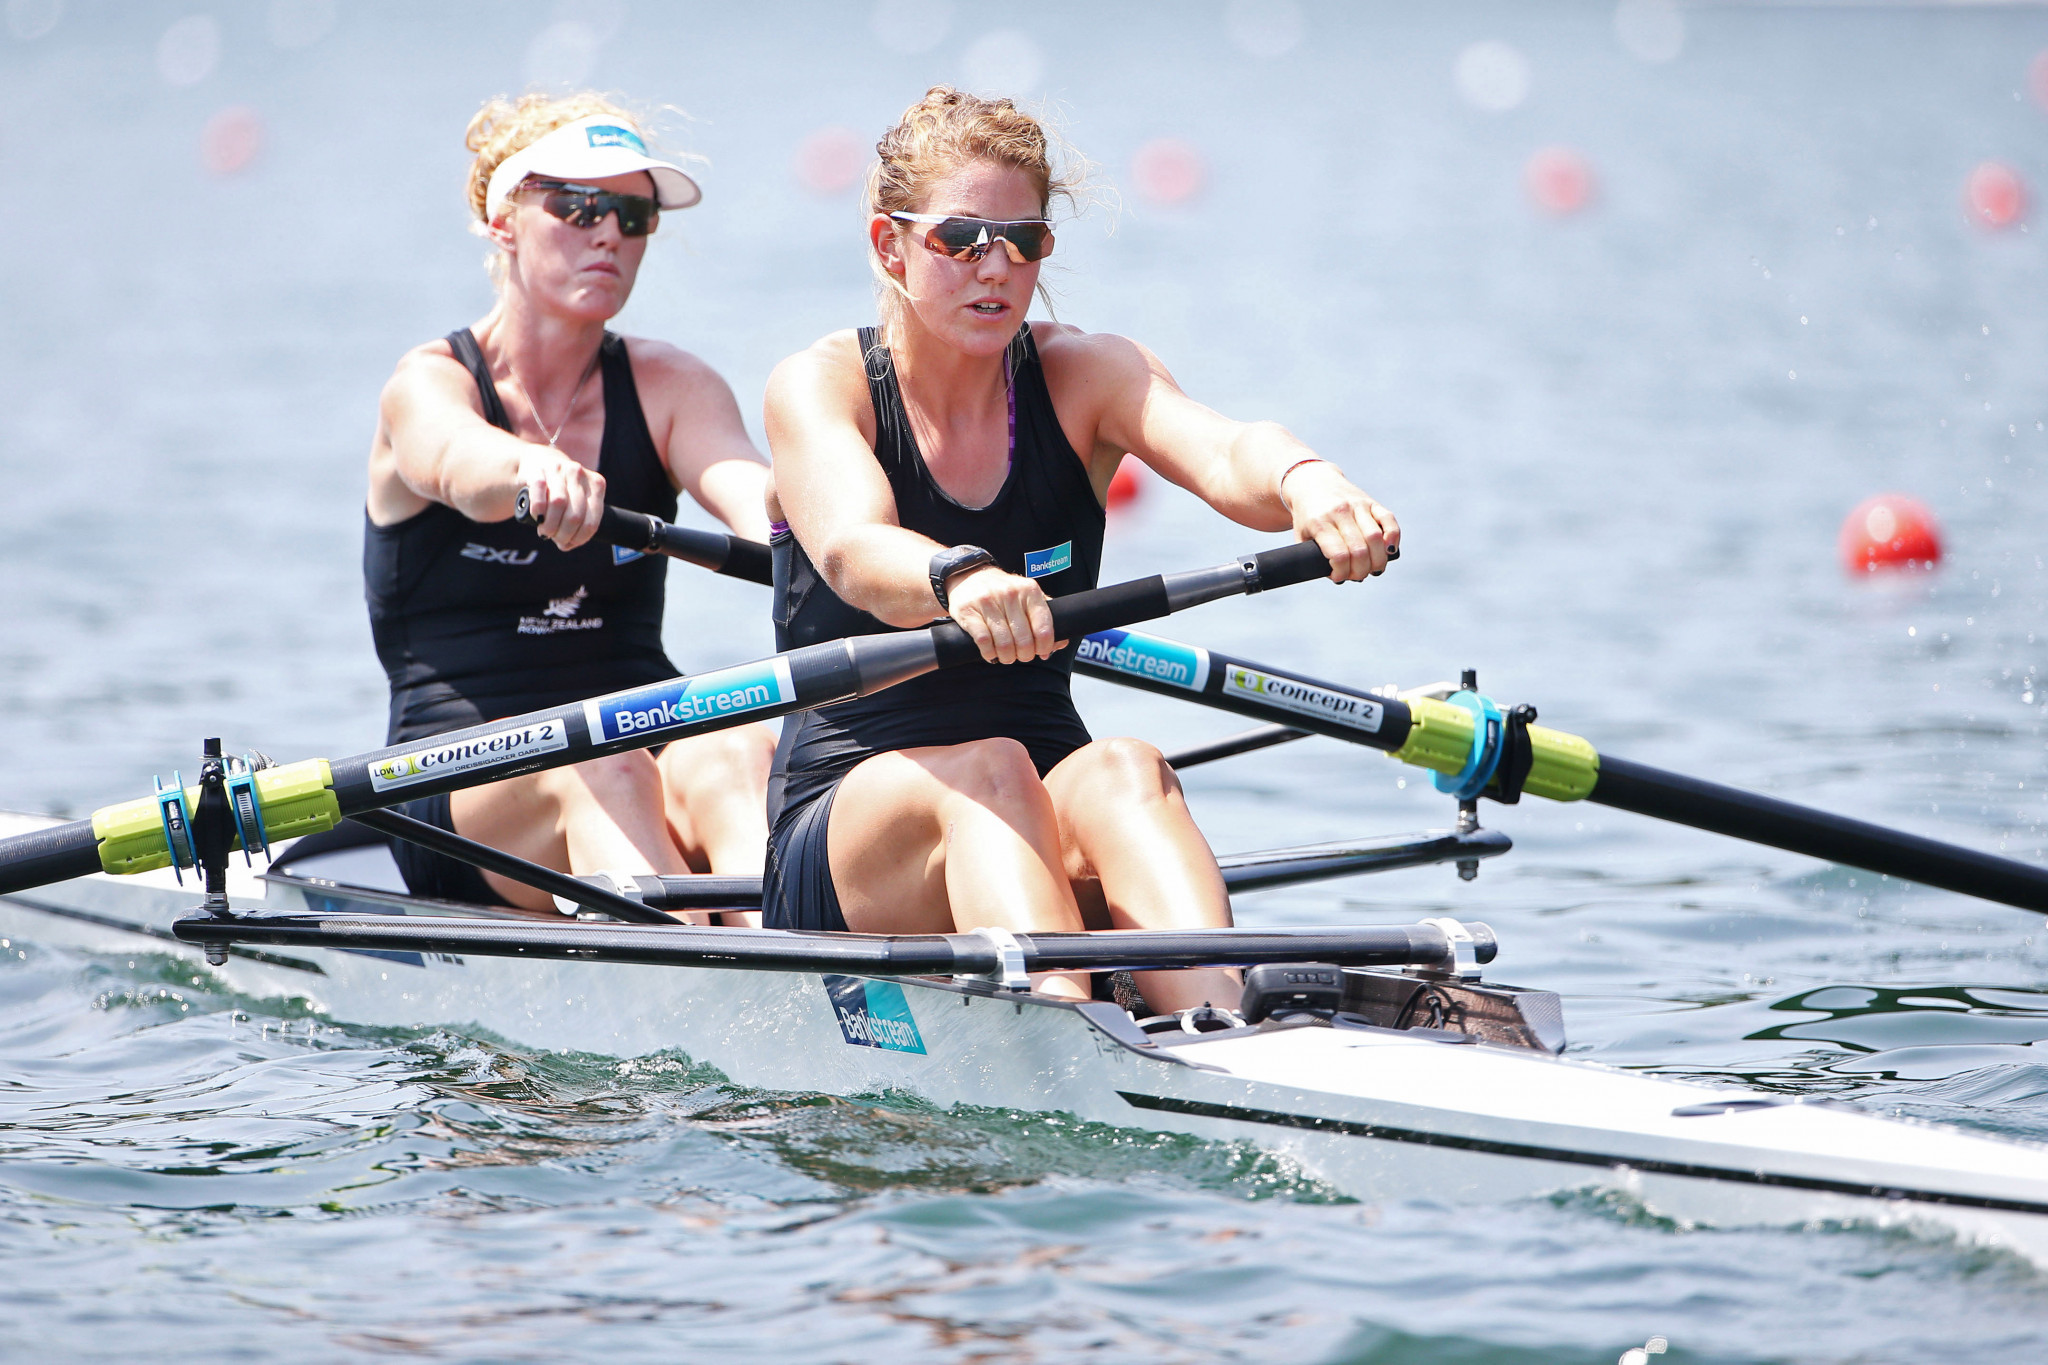 World champions ease through on opening day of World Rowing Cup in Lucerne